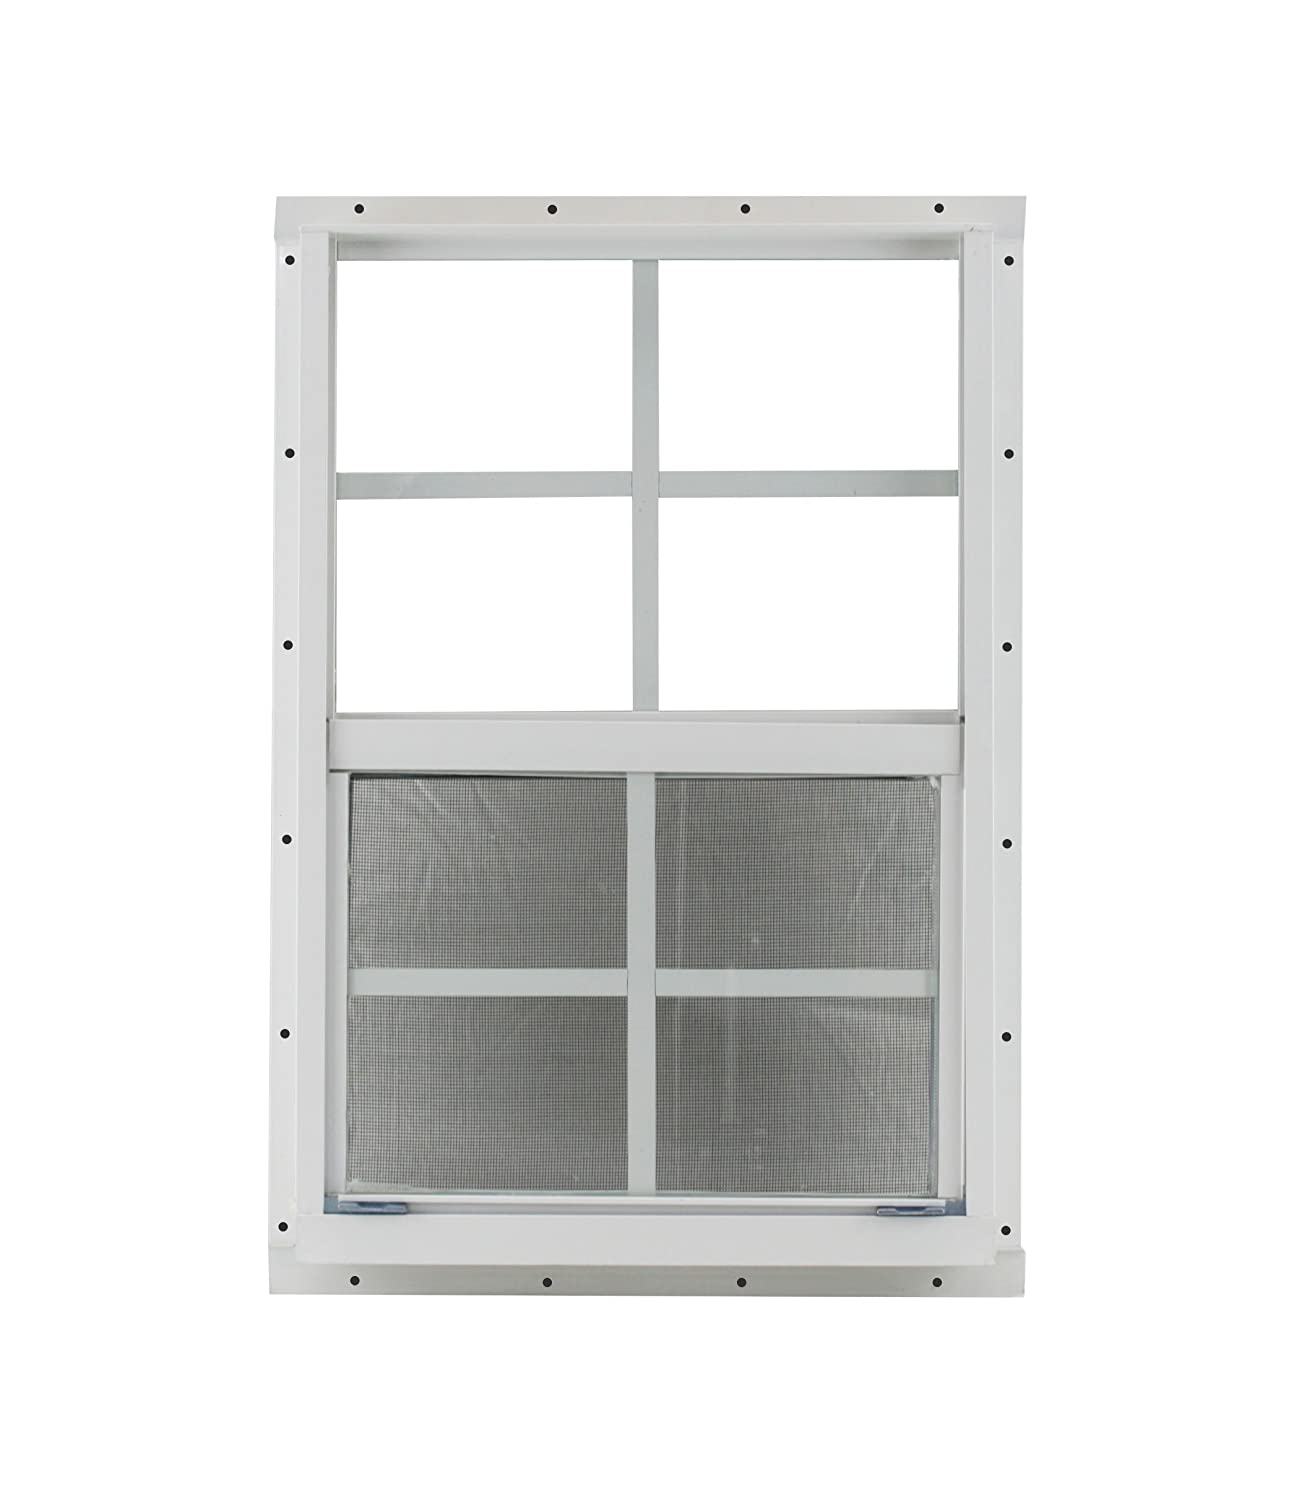 Treehouses Shed Window 16 X 24 White Flush Mount with Safety Glass Playhouses